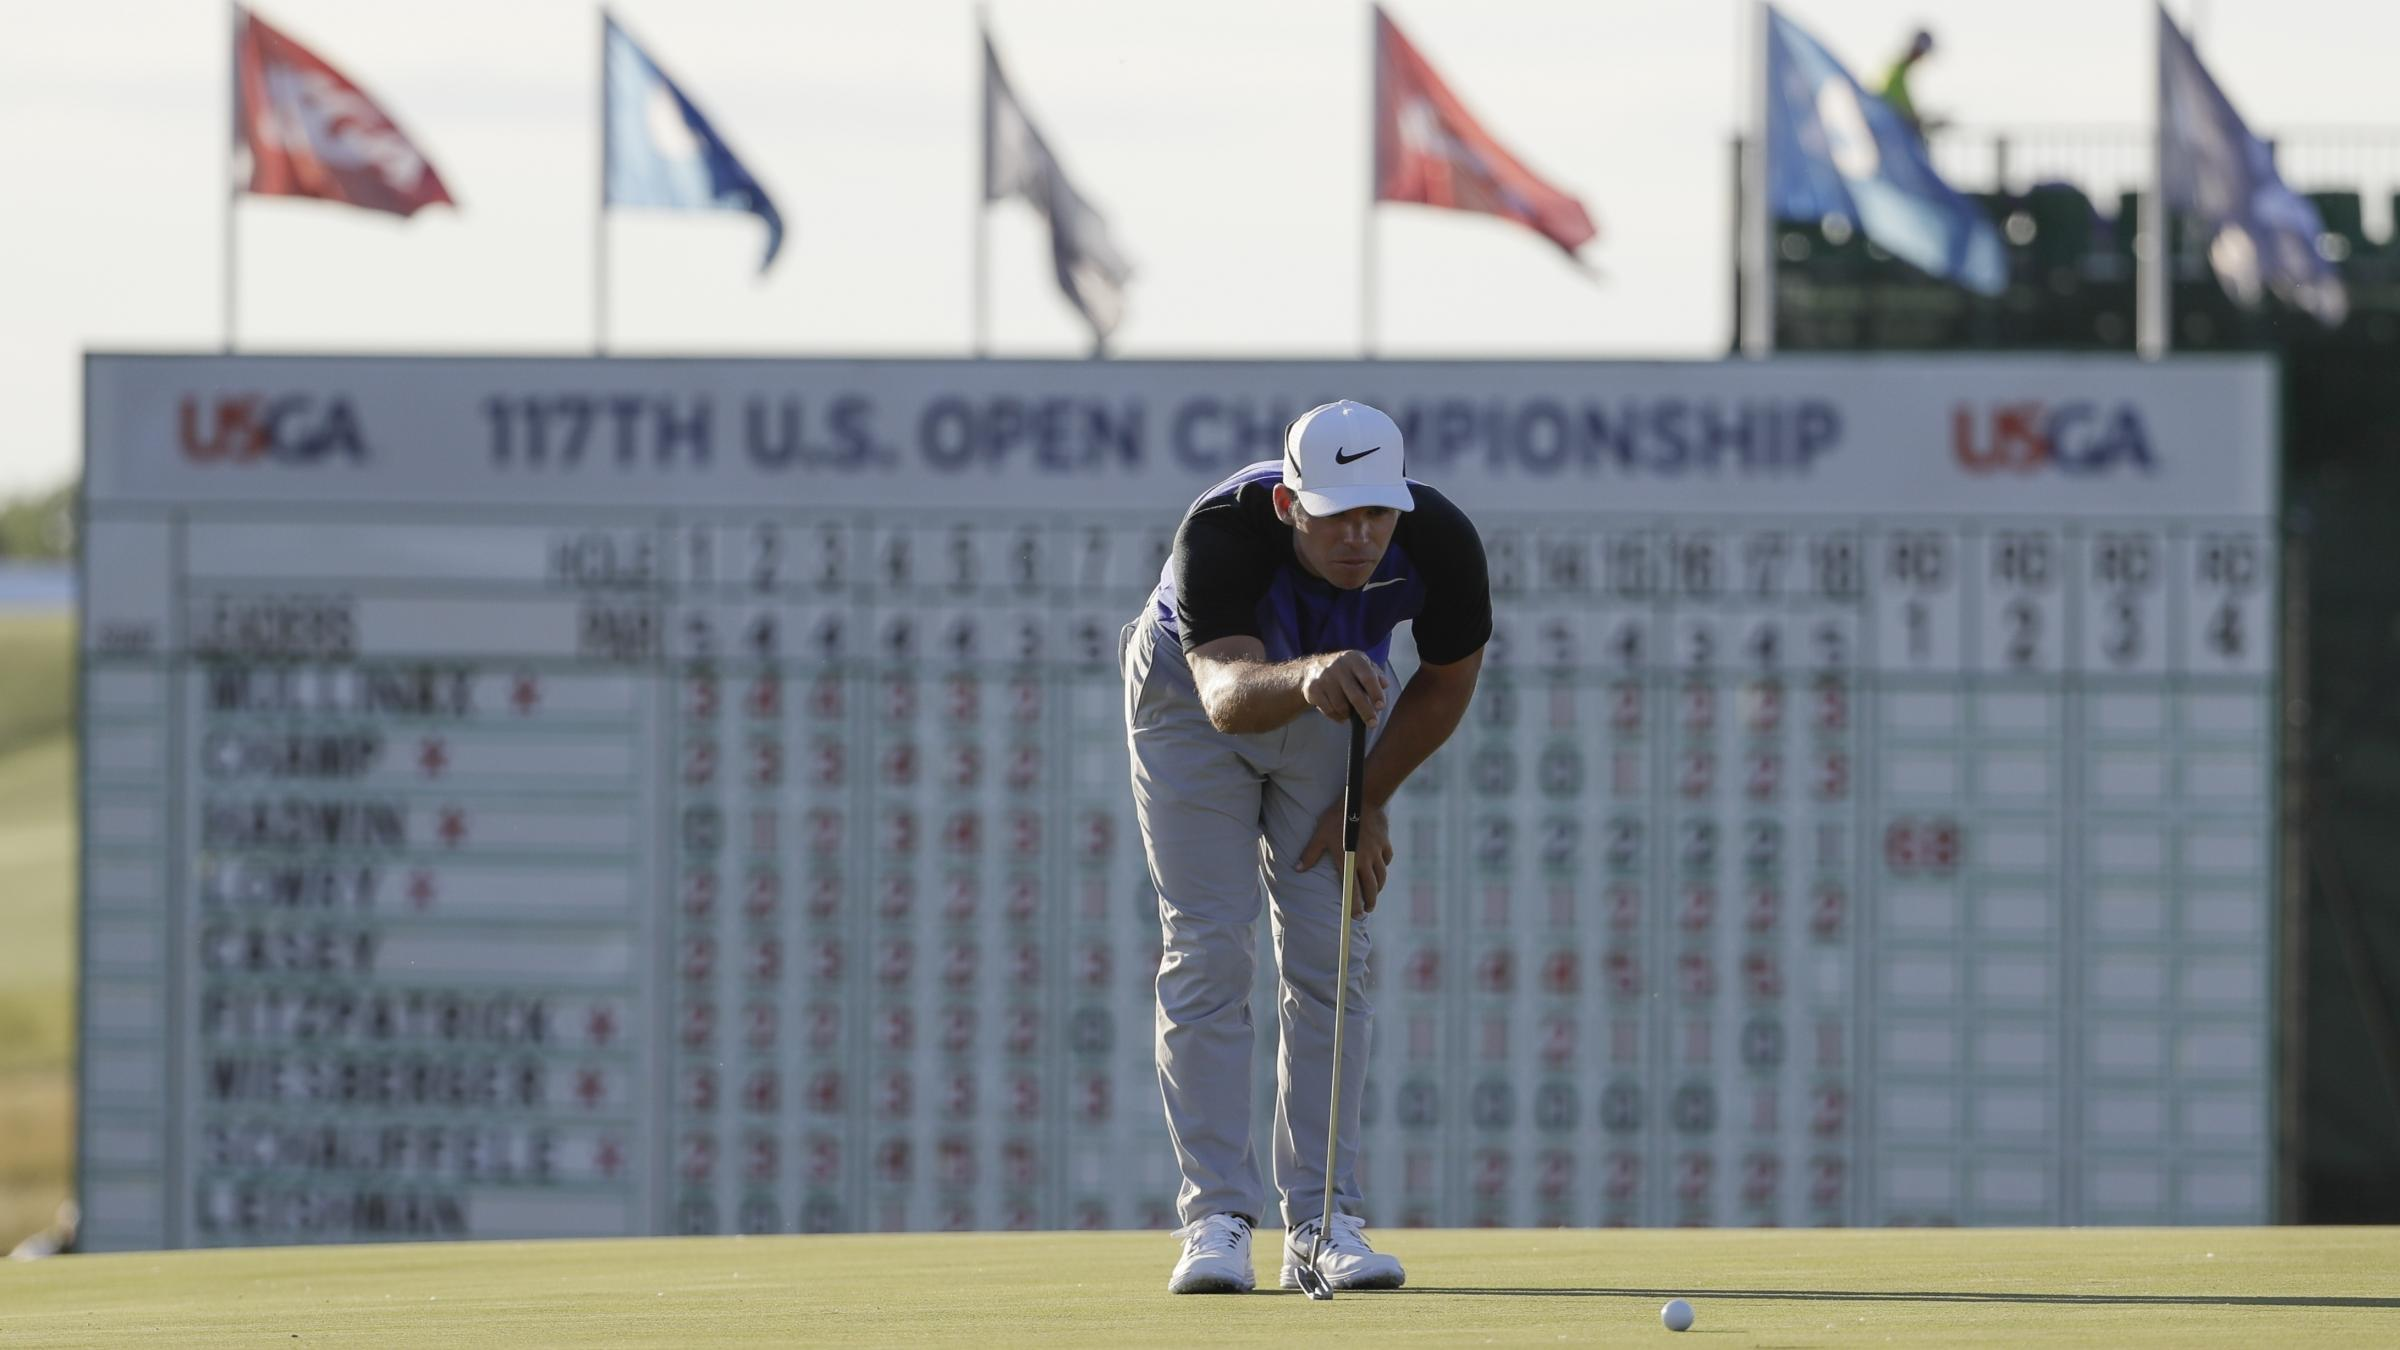 Justin Thomas shoots 63, trails Brian Harman by 1 at US Open